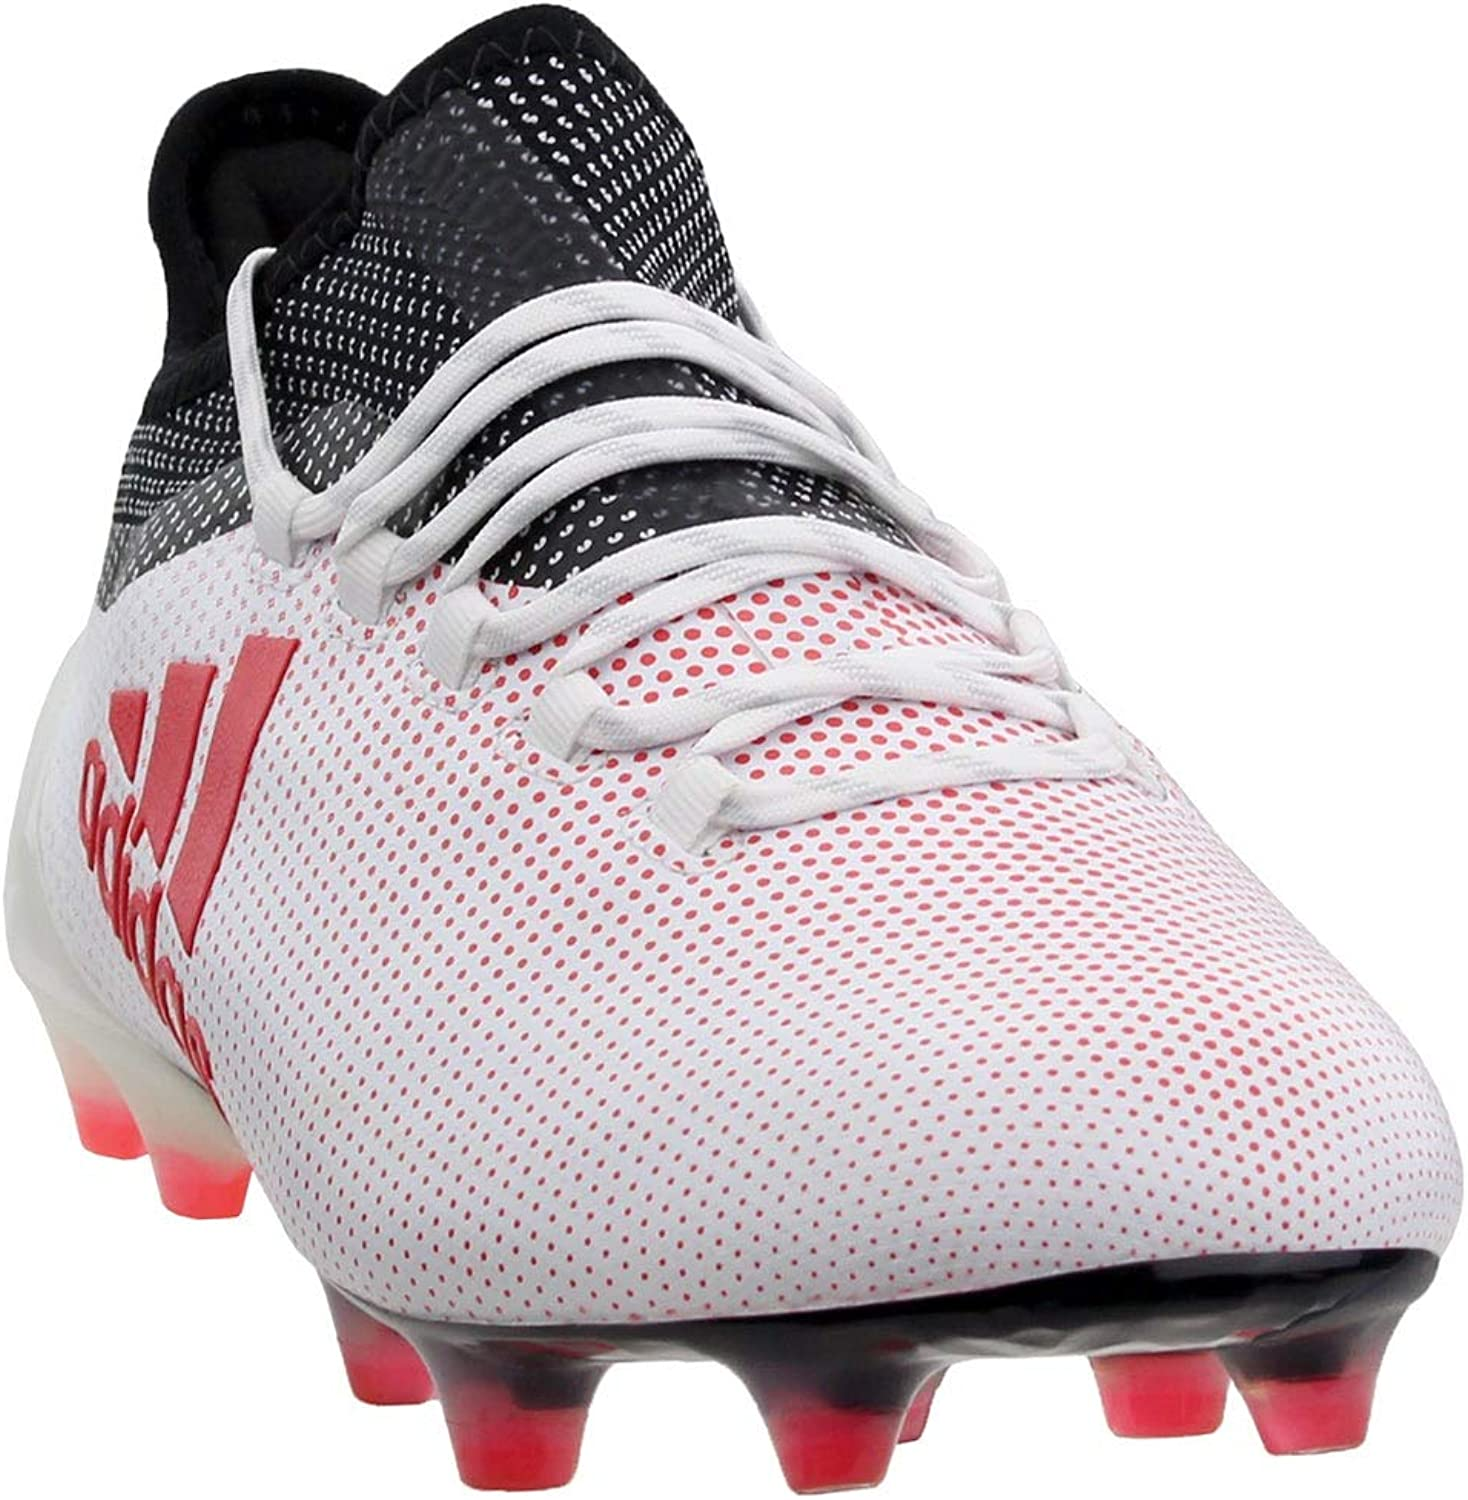 Adidas X 17.1 Men's Firm Ground Soccer Cleats (8 D(M) US) White Red Black